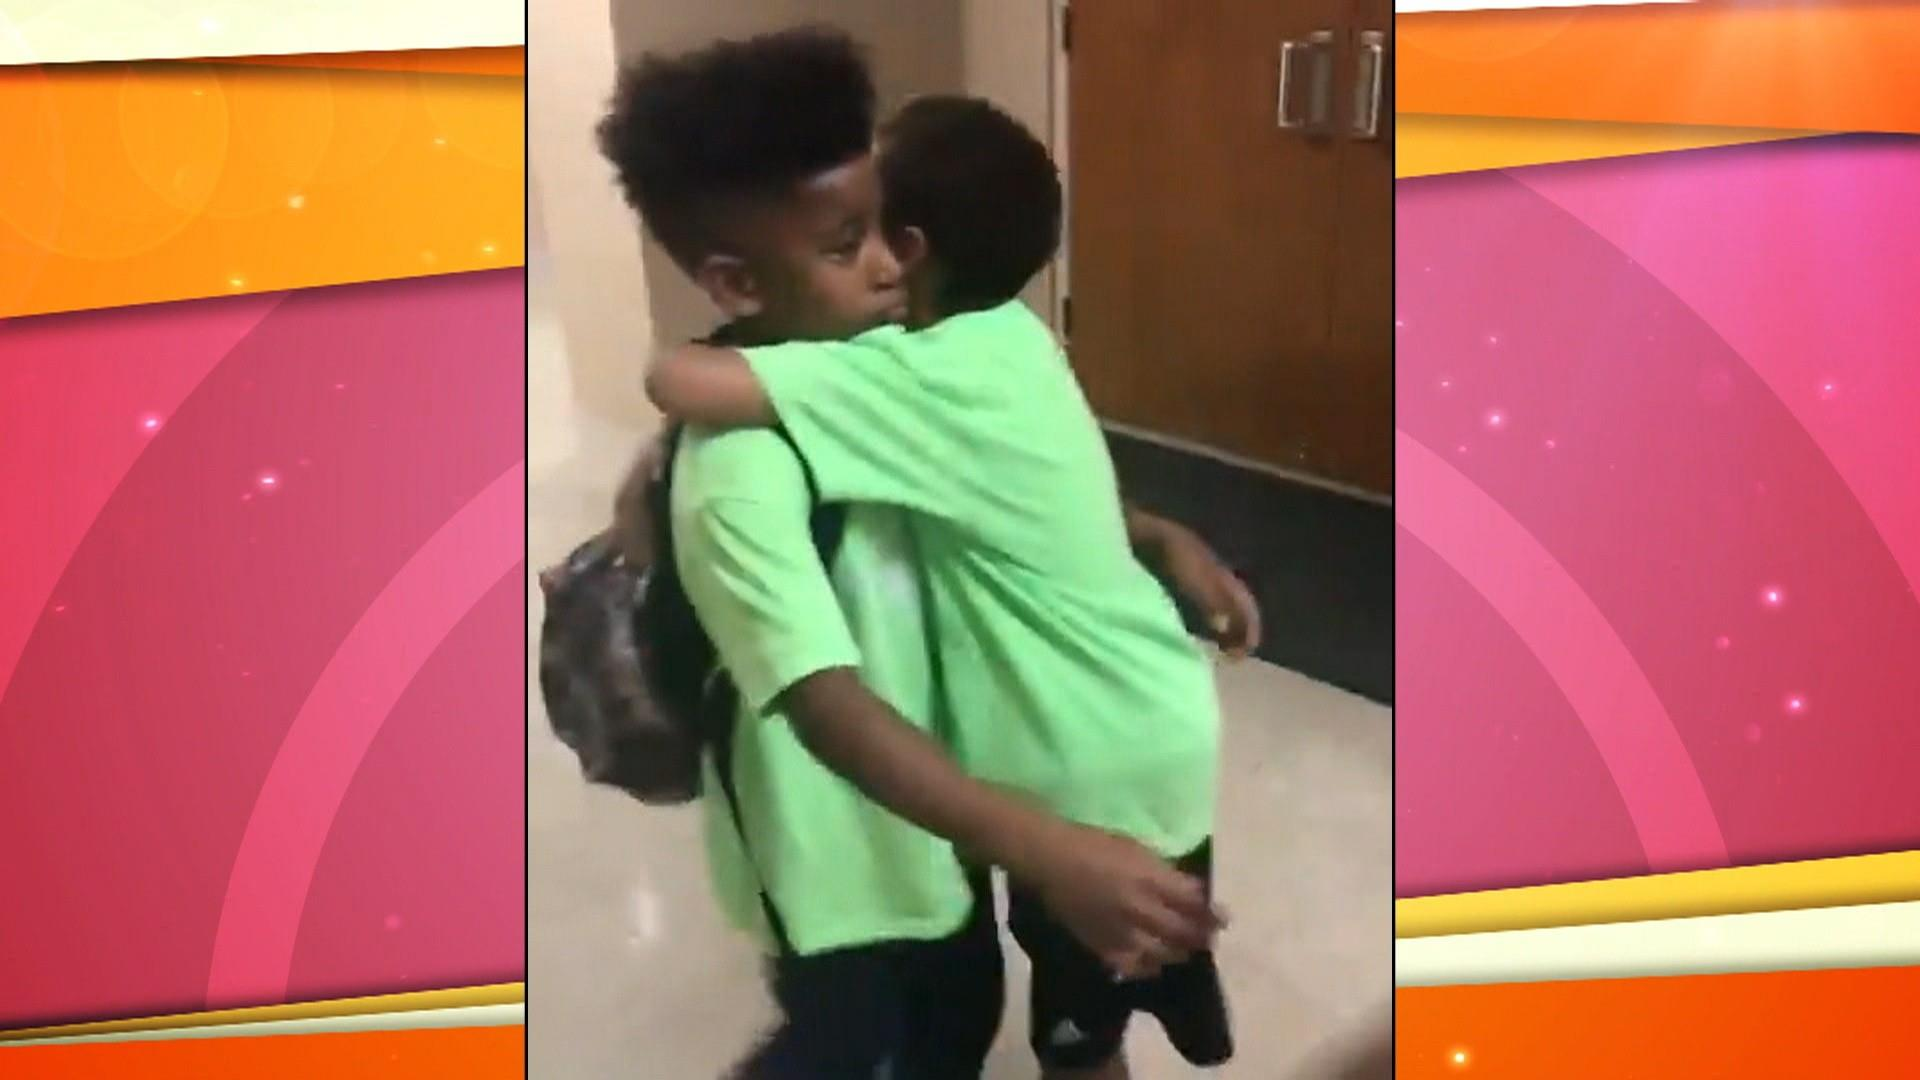 Watch sweet kids' emotional goodbye on last day of camp